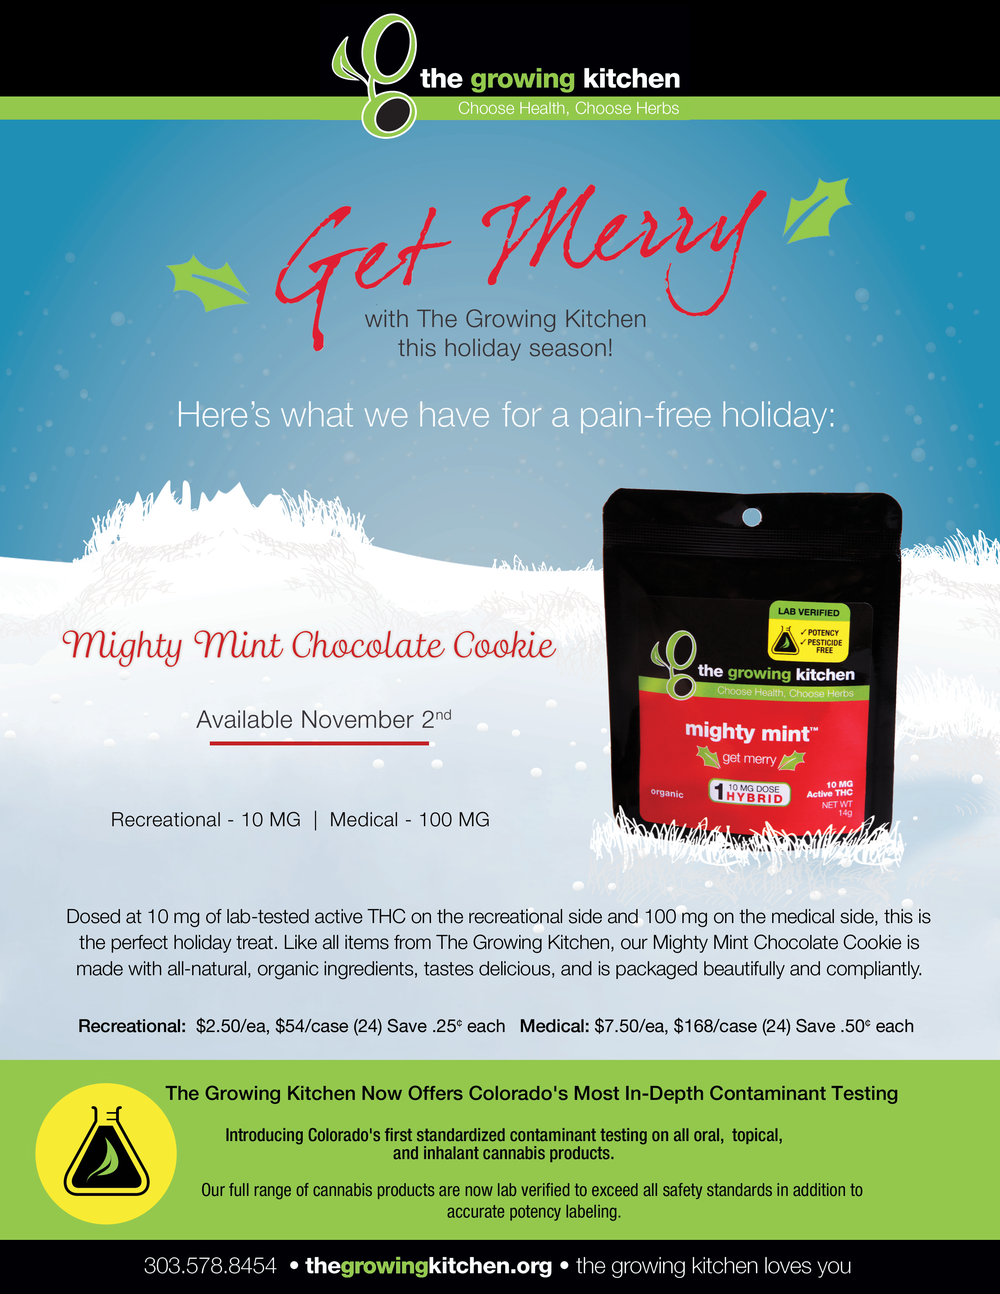 Mighty Mint Flyer - The Growing Kitchen.jpg